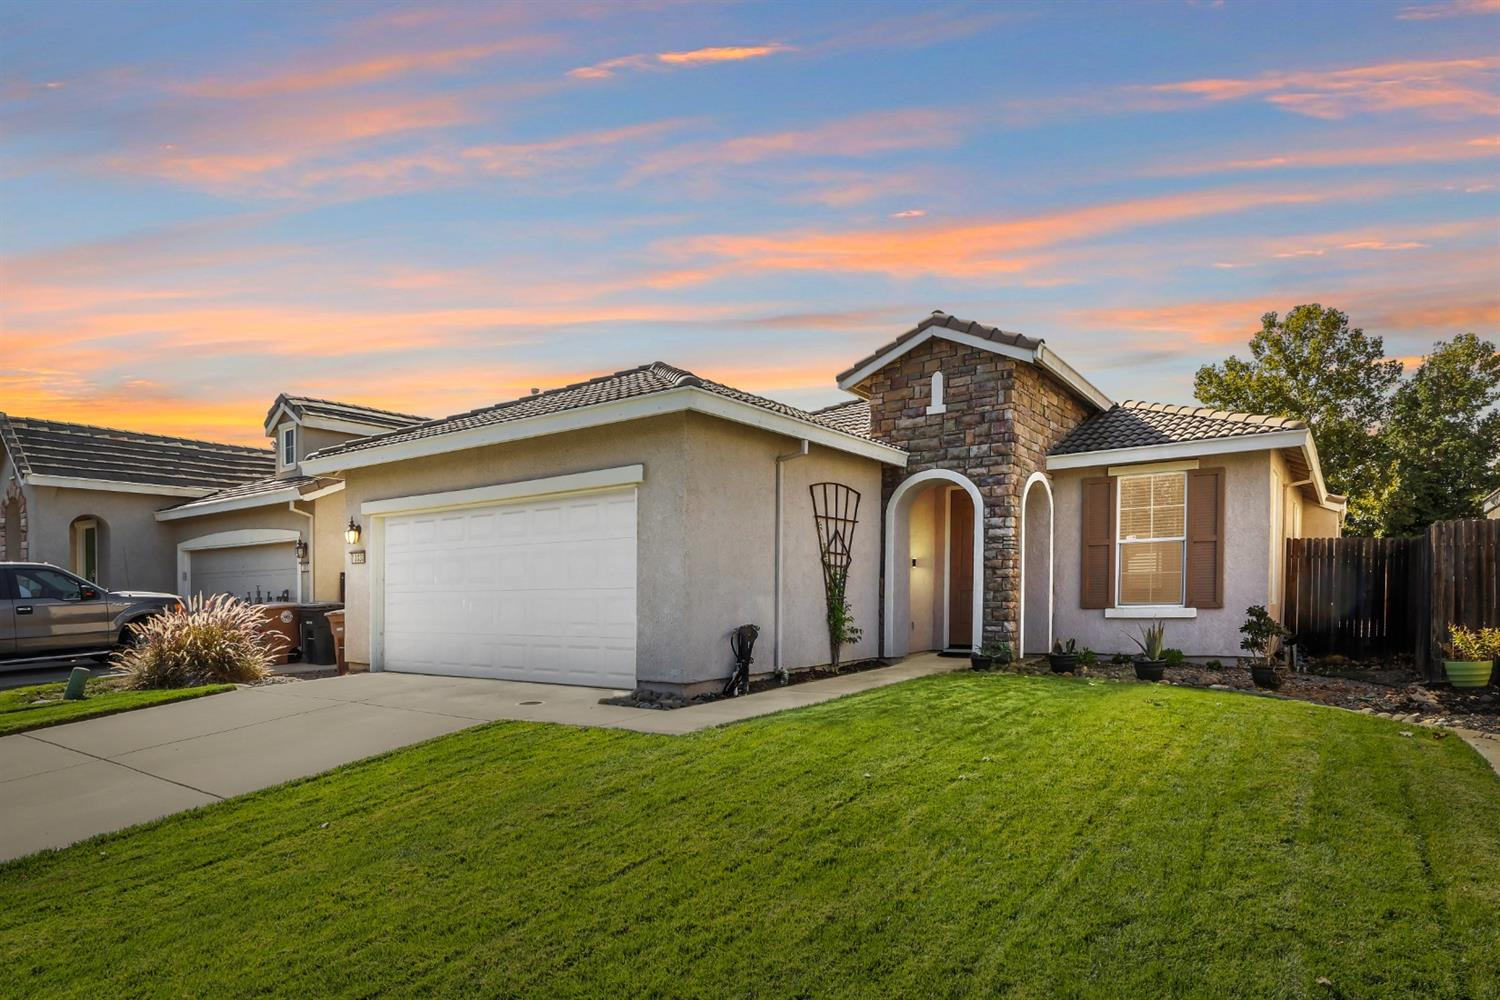 Home Sweet Home! In this move-in ready 3 bedroom home in Elk Grove offers a functional floor plan is